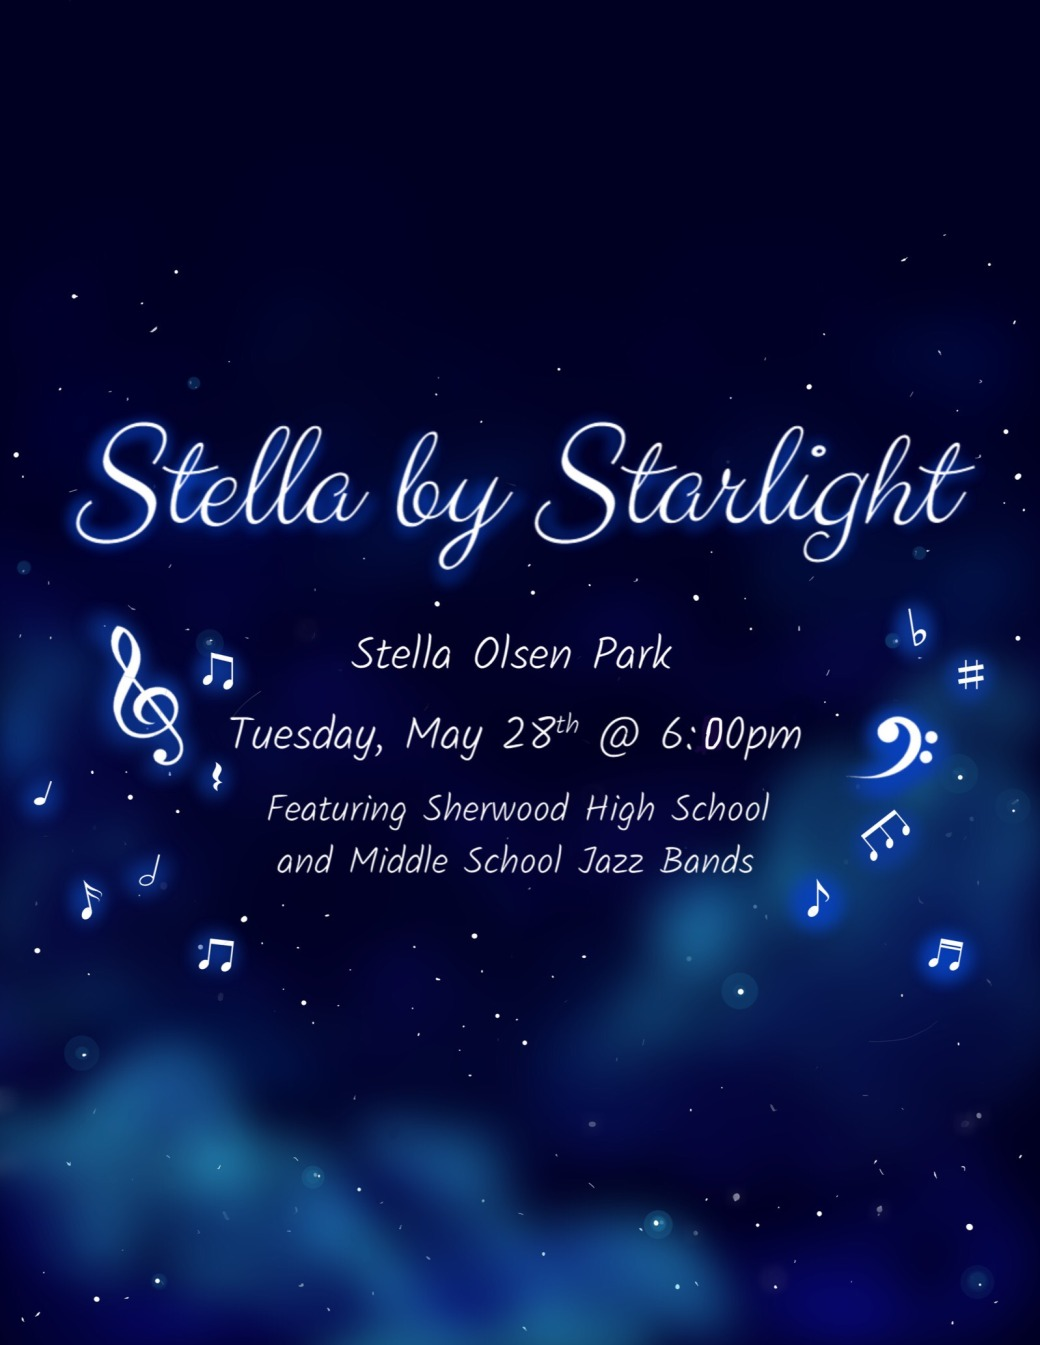 Stella by Starlight 2019